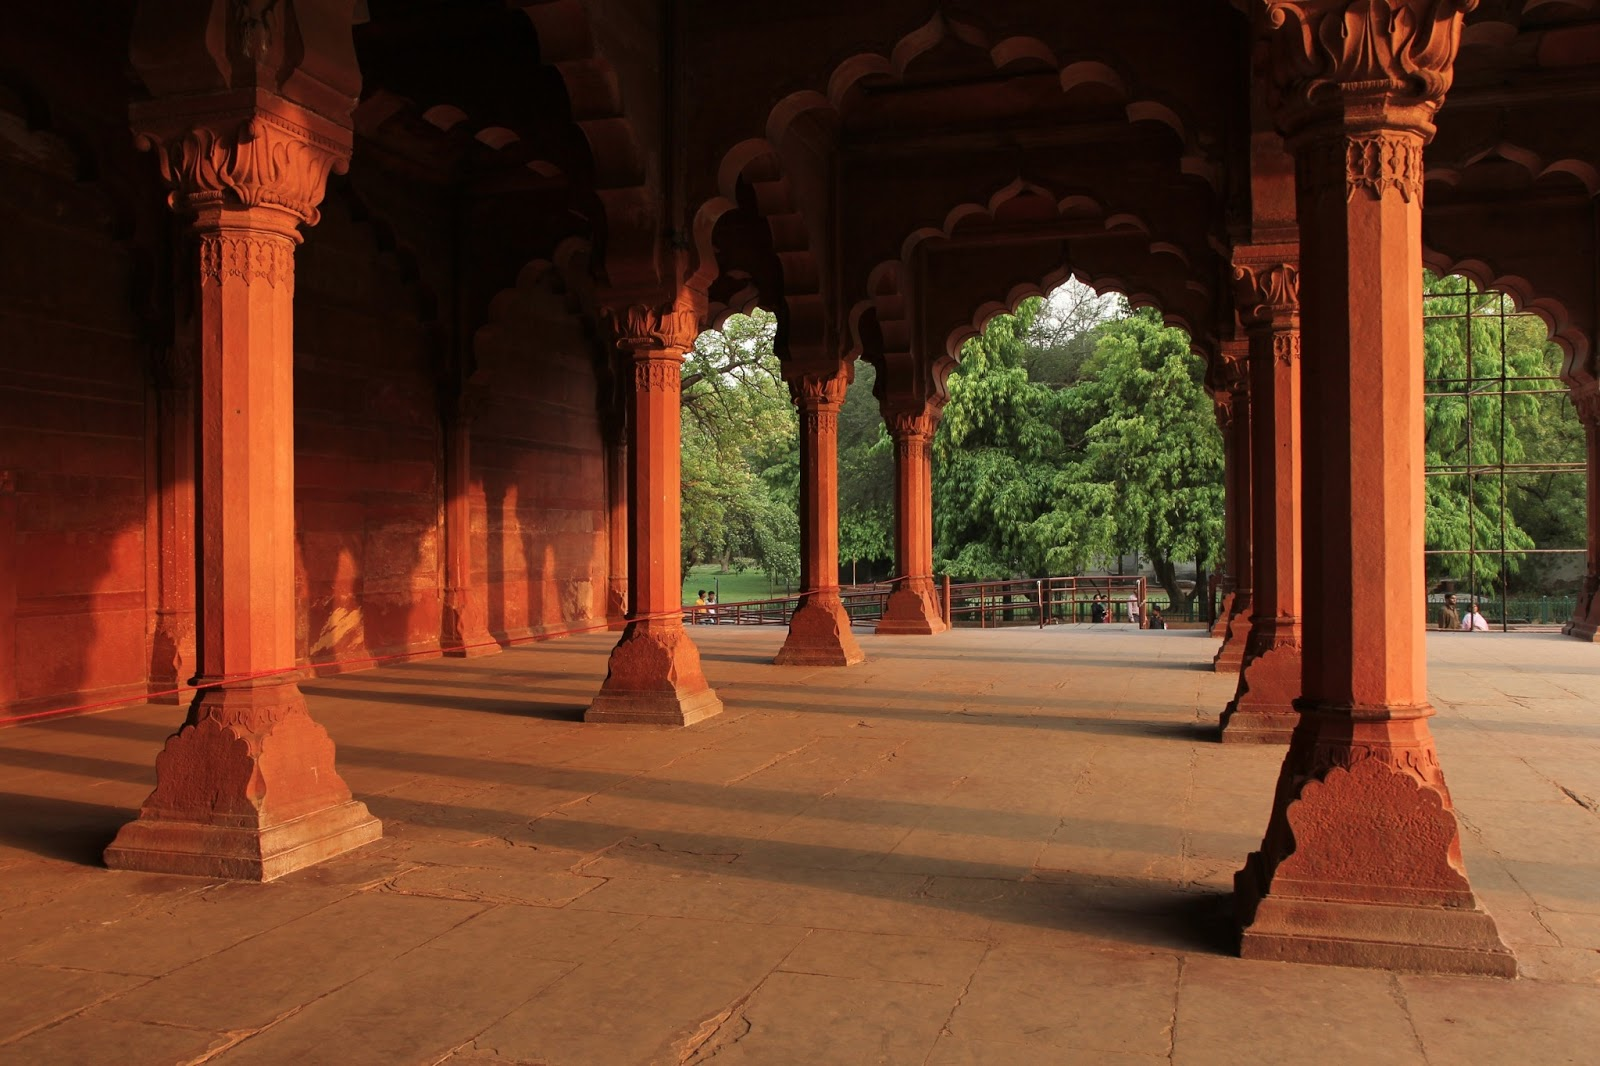 influence in india Top 10 books about the british in india from rudyard kipling to william dalrymple, these titles document the folly, cruelty and heroism of the raj  so that the british influence lingers on in.